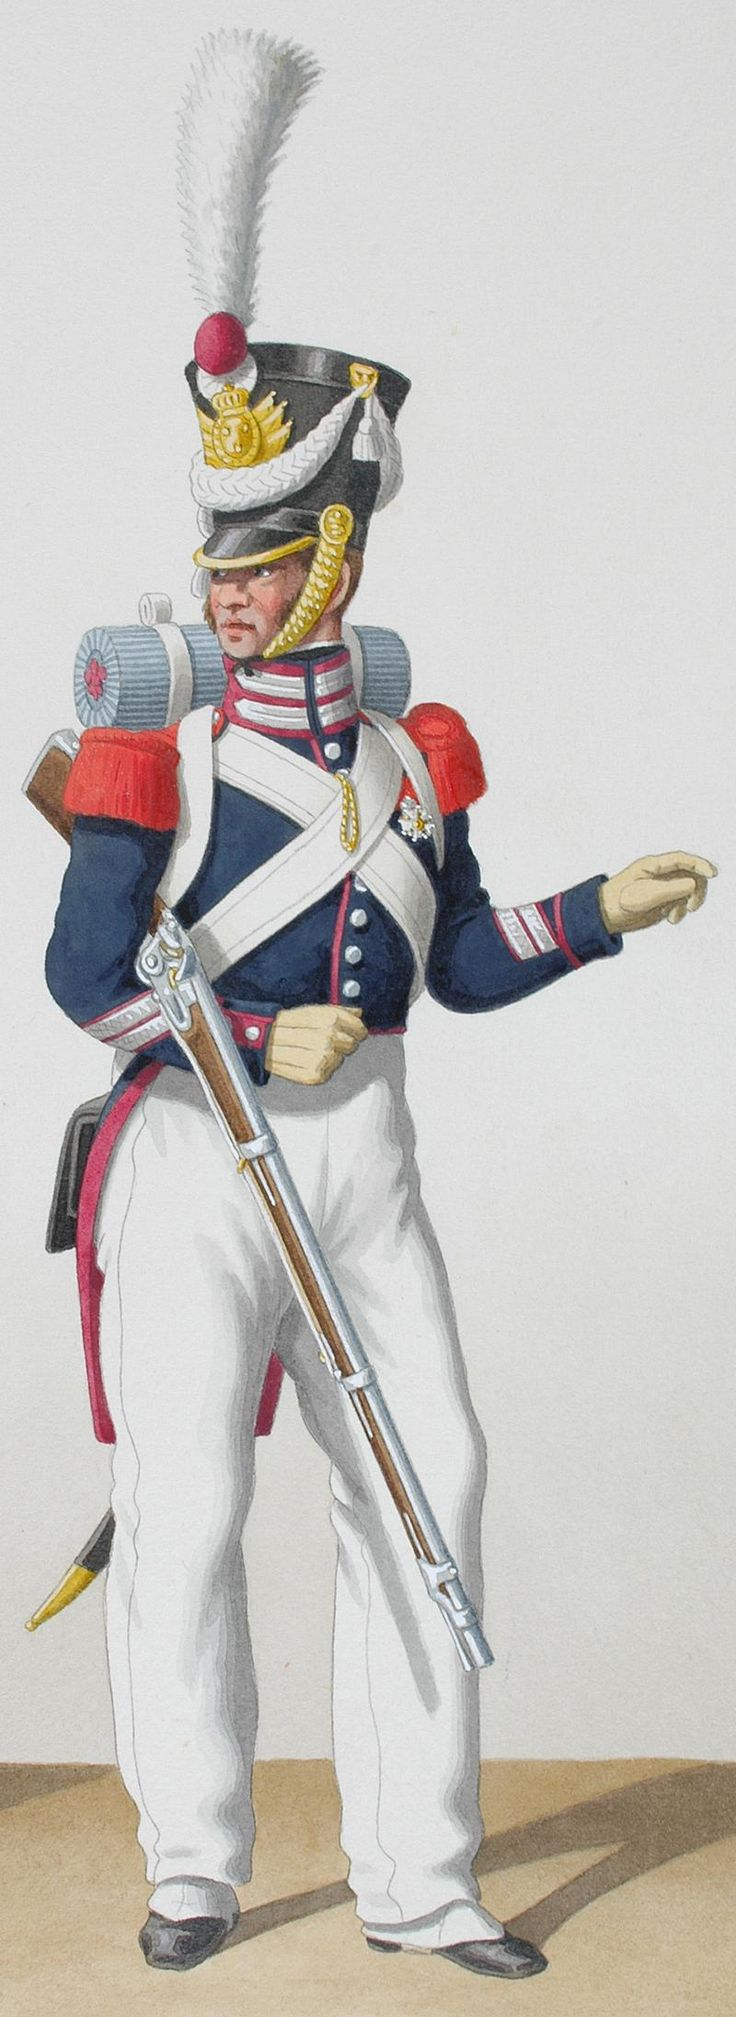 1830. Garde Royale. Sous-Officier Sédentaires. Capitaine, Sergent.